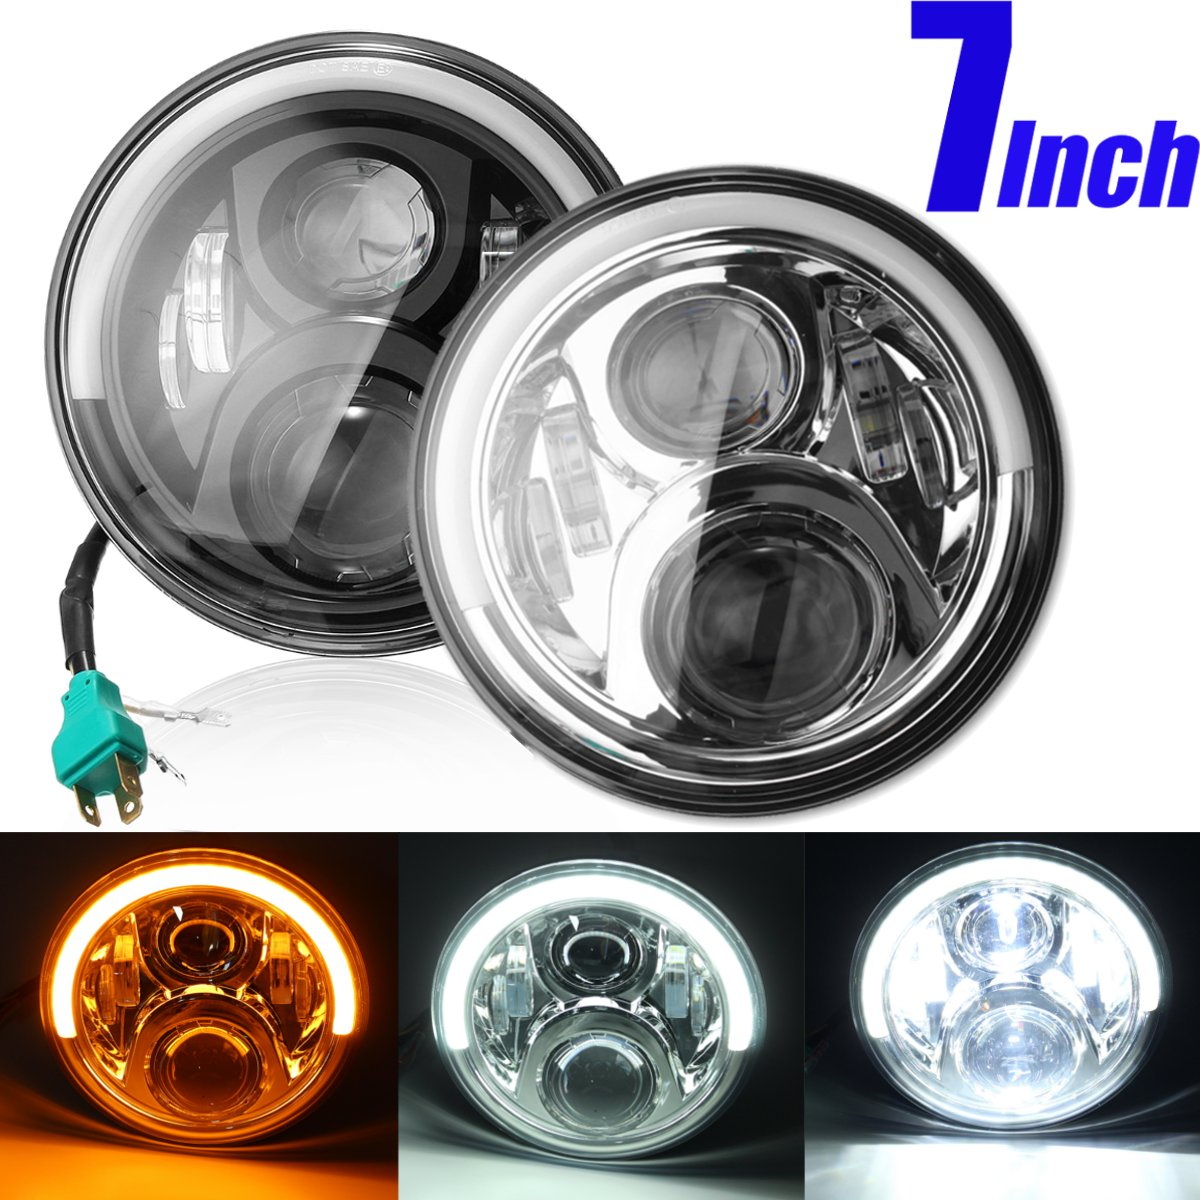 7inch Angel Eyes LED HI/LO Beam DRL Turn Signal Headlight For Harley Davidson/Jeep Cherokee